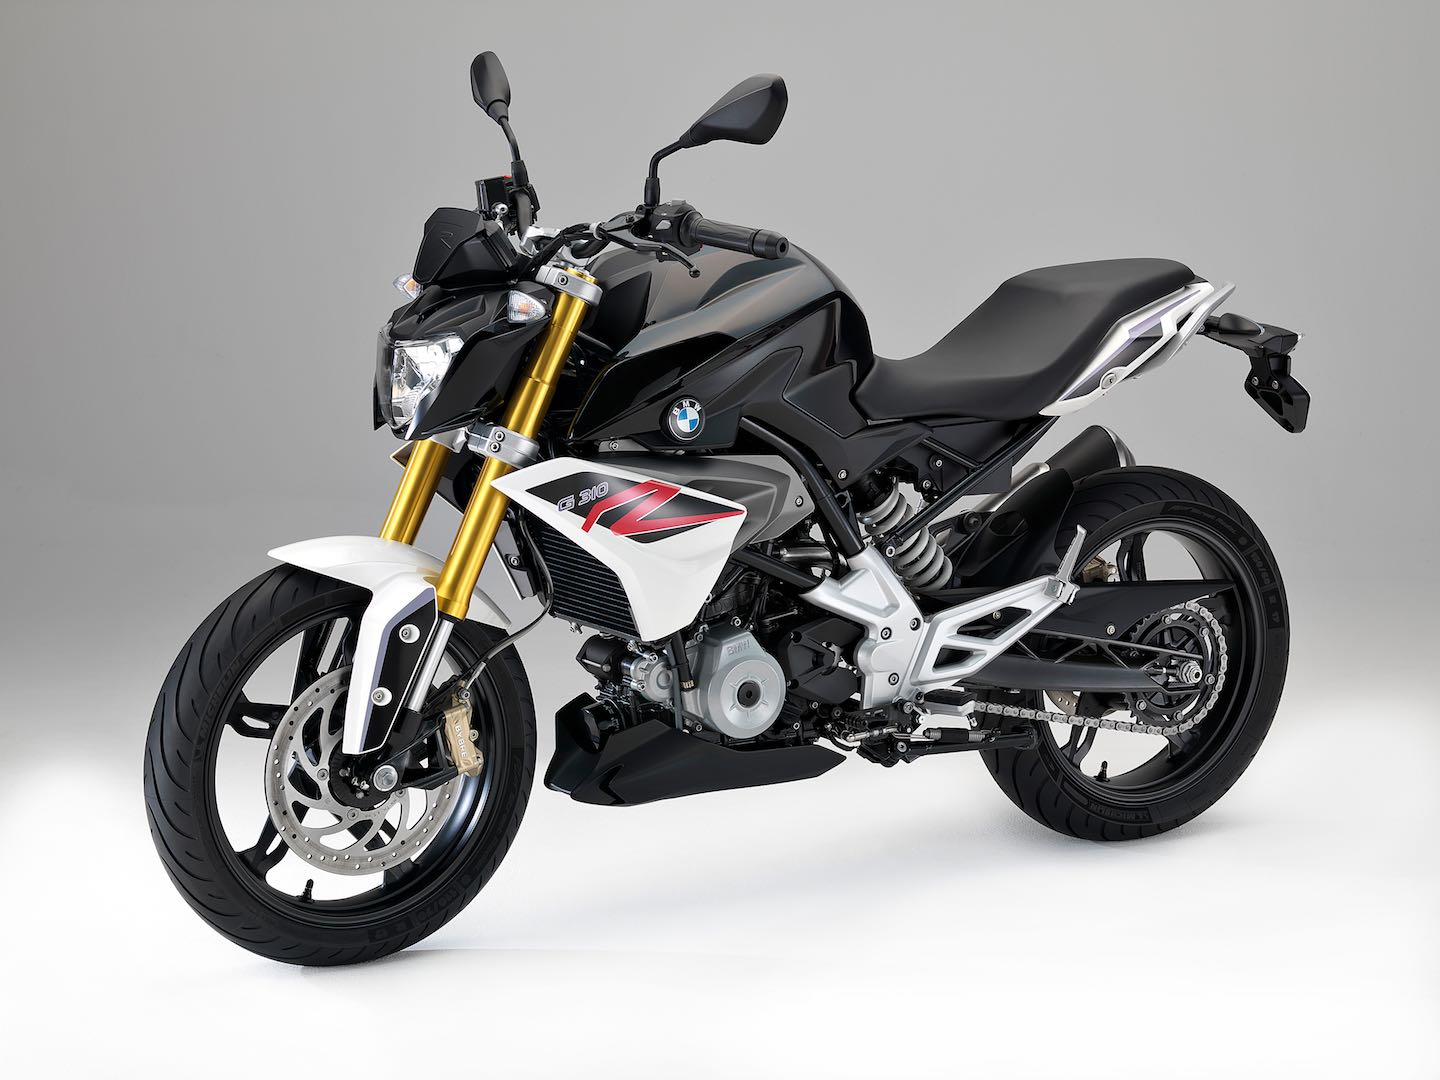 2018 BMW G 310 R Buyer's Guide | Specs & Price